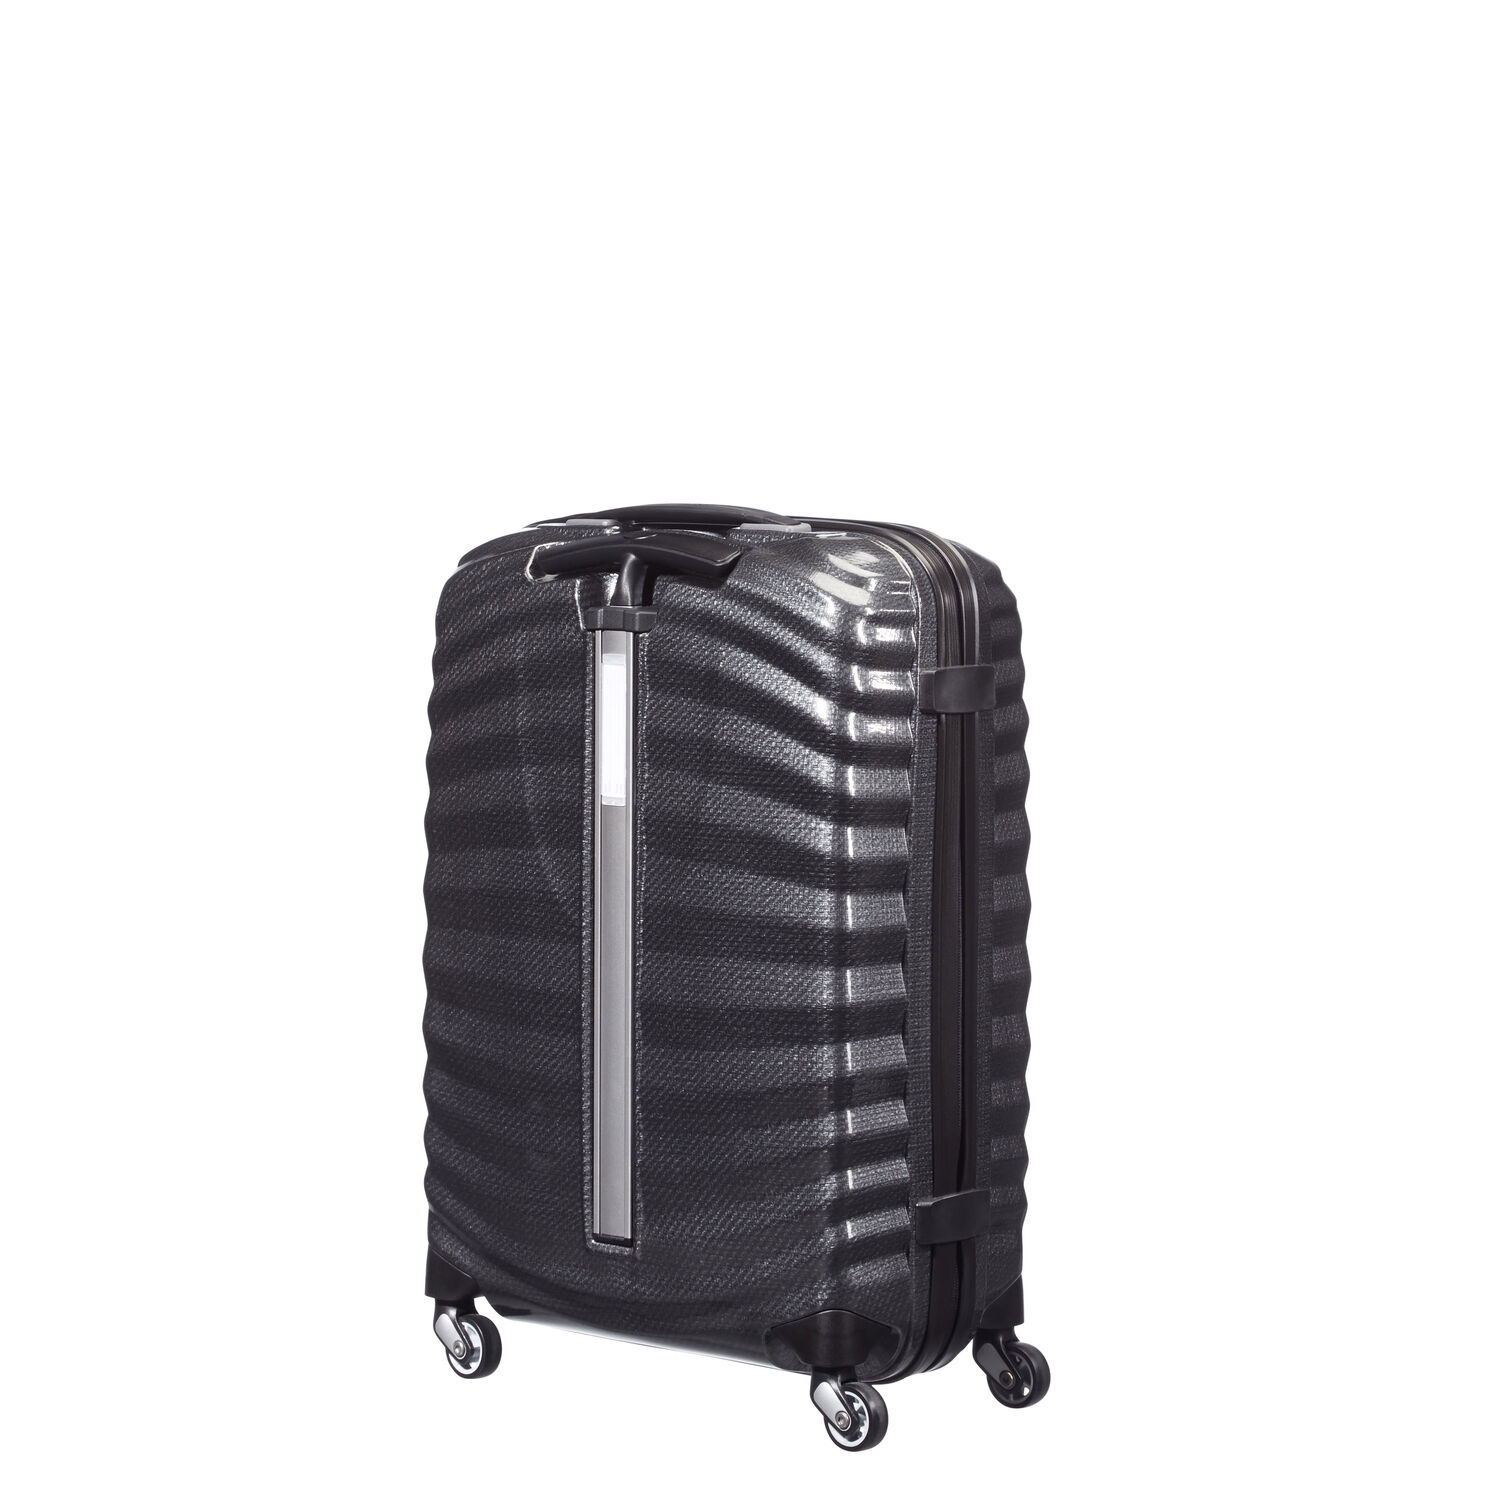 This is a photo of Tactueux Samsonite Black Label Vintage Spinner